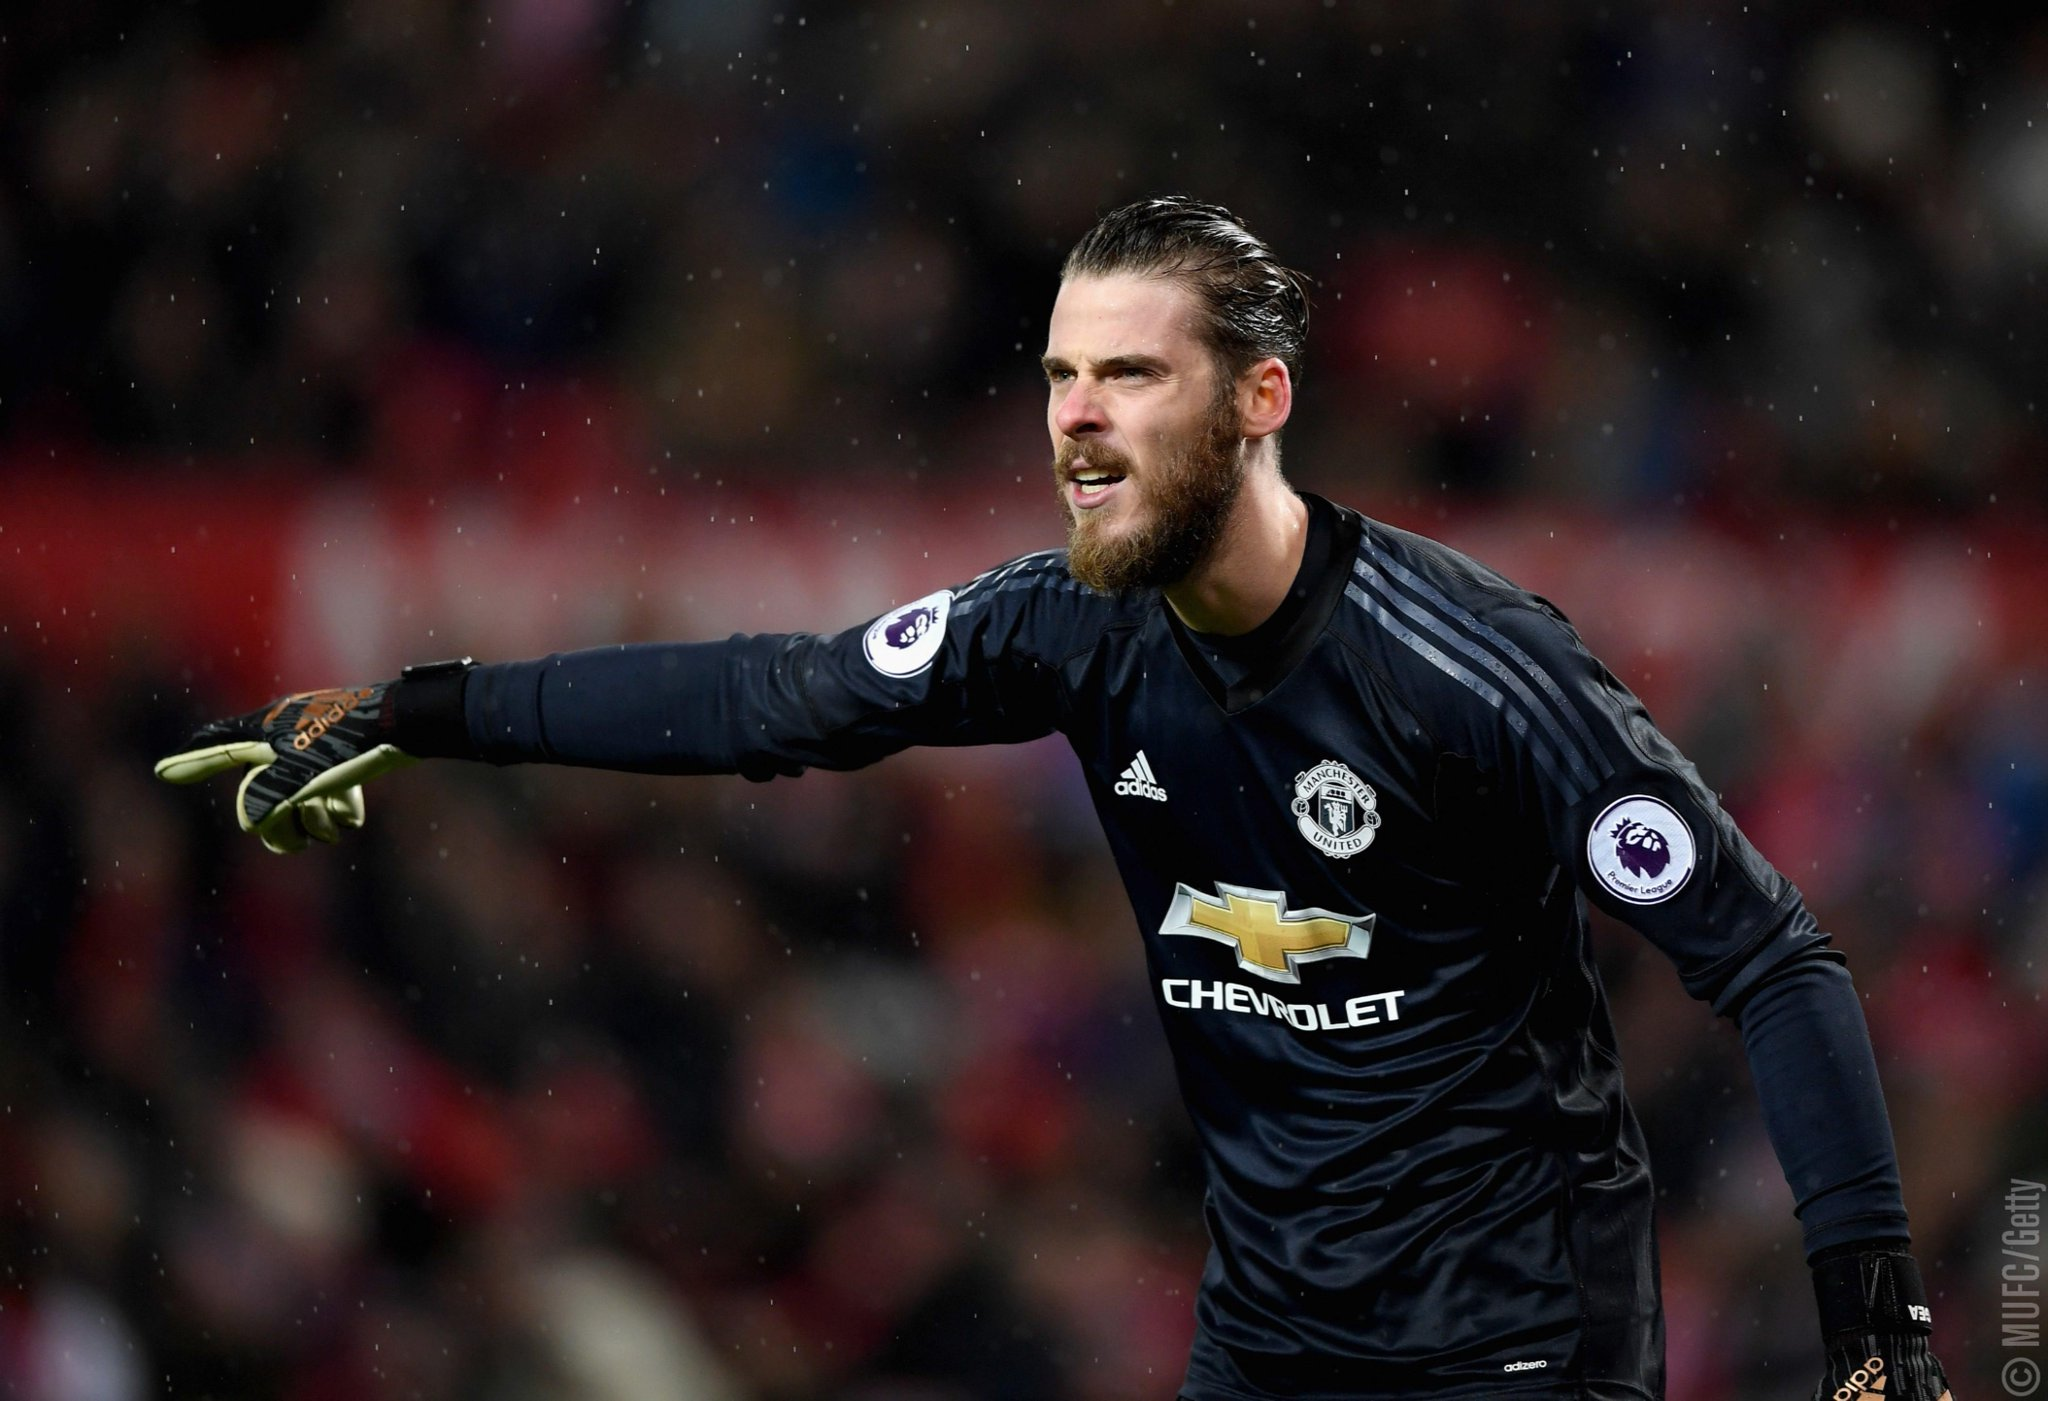 .@D_DeGeahas revealed who his closest goalkeeping friend away from #MUFC is...  ➡️ https://t.co/TKD6A1MbFg https://t.co/MOzNeFOyso